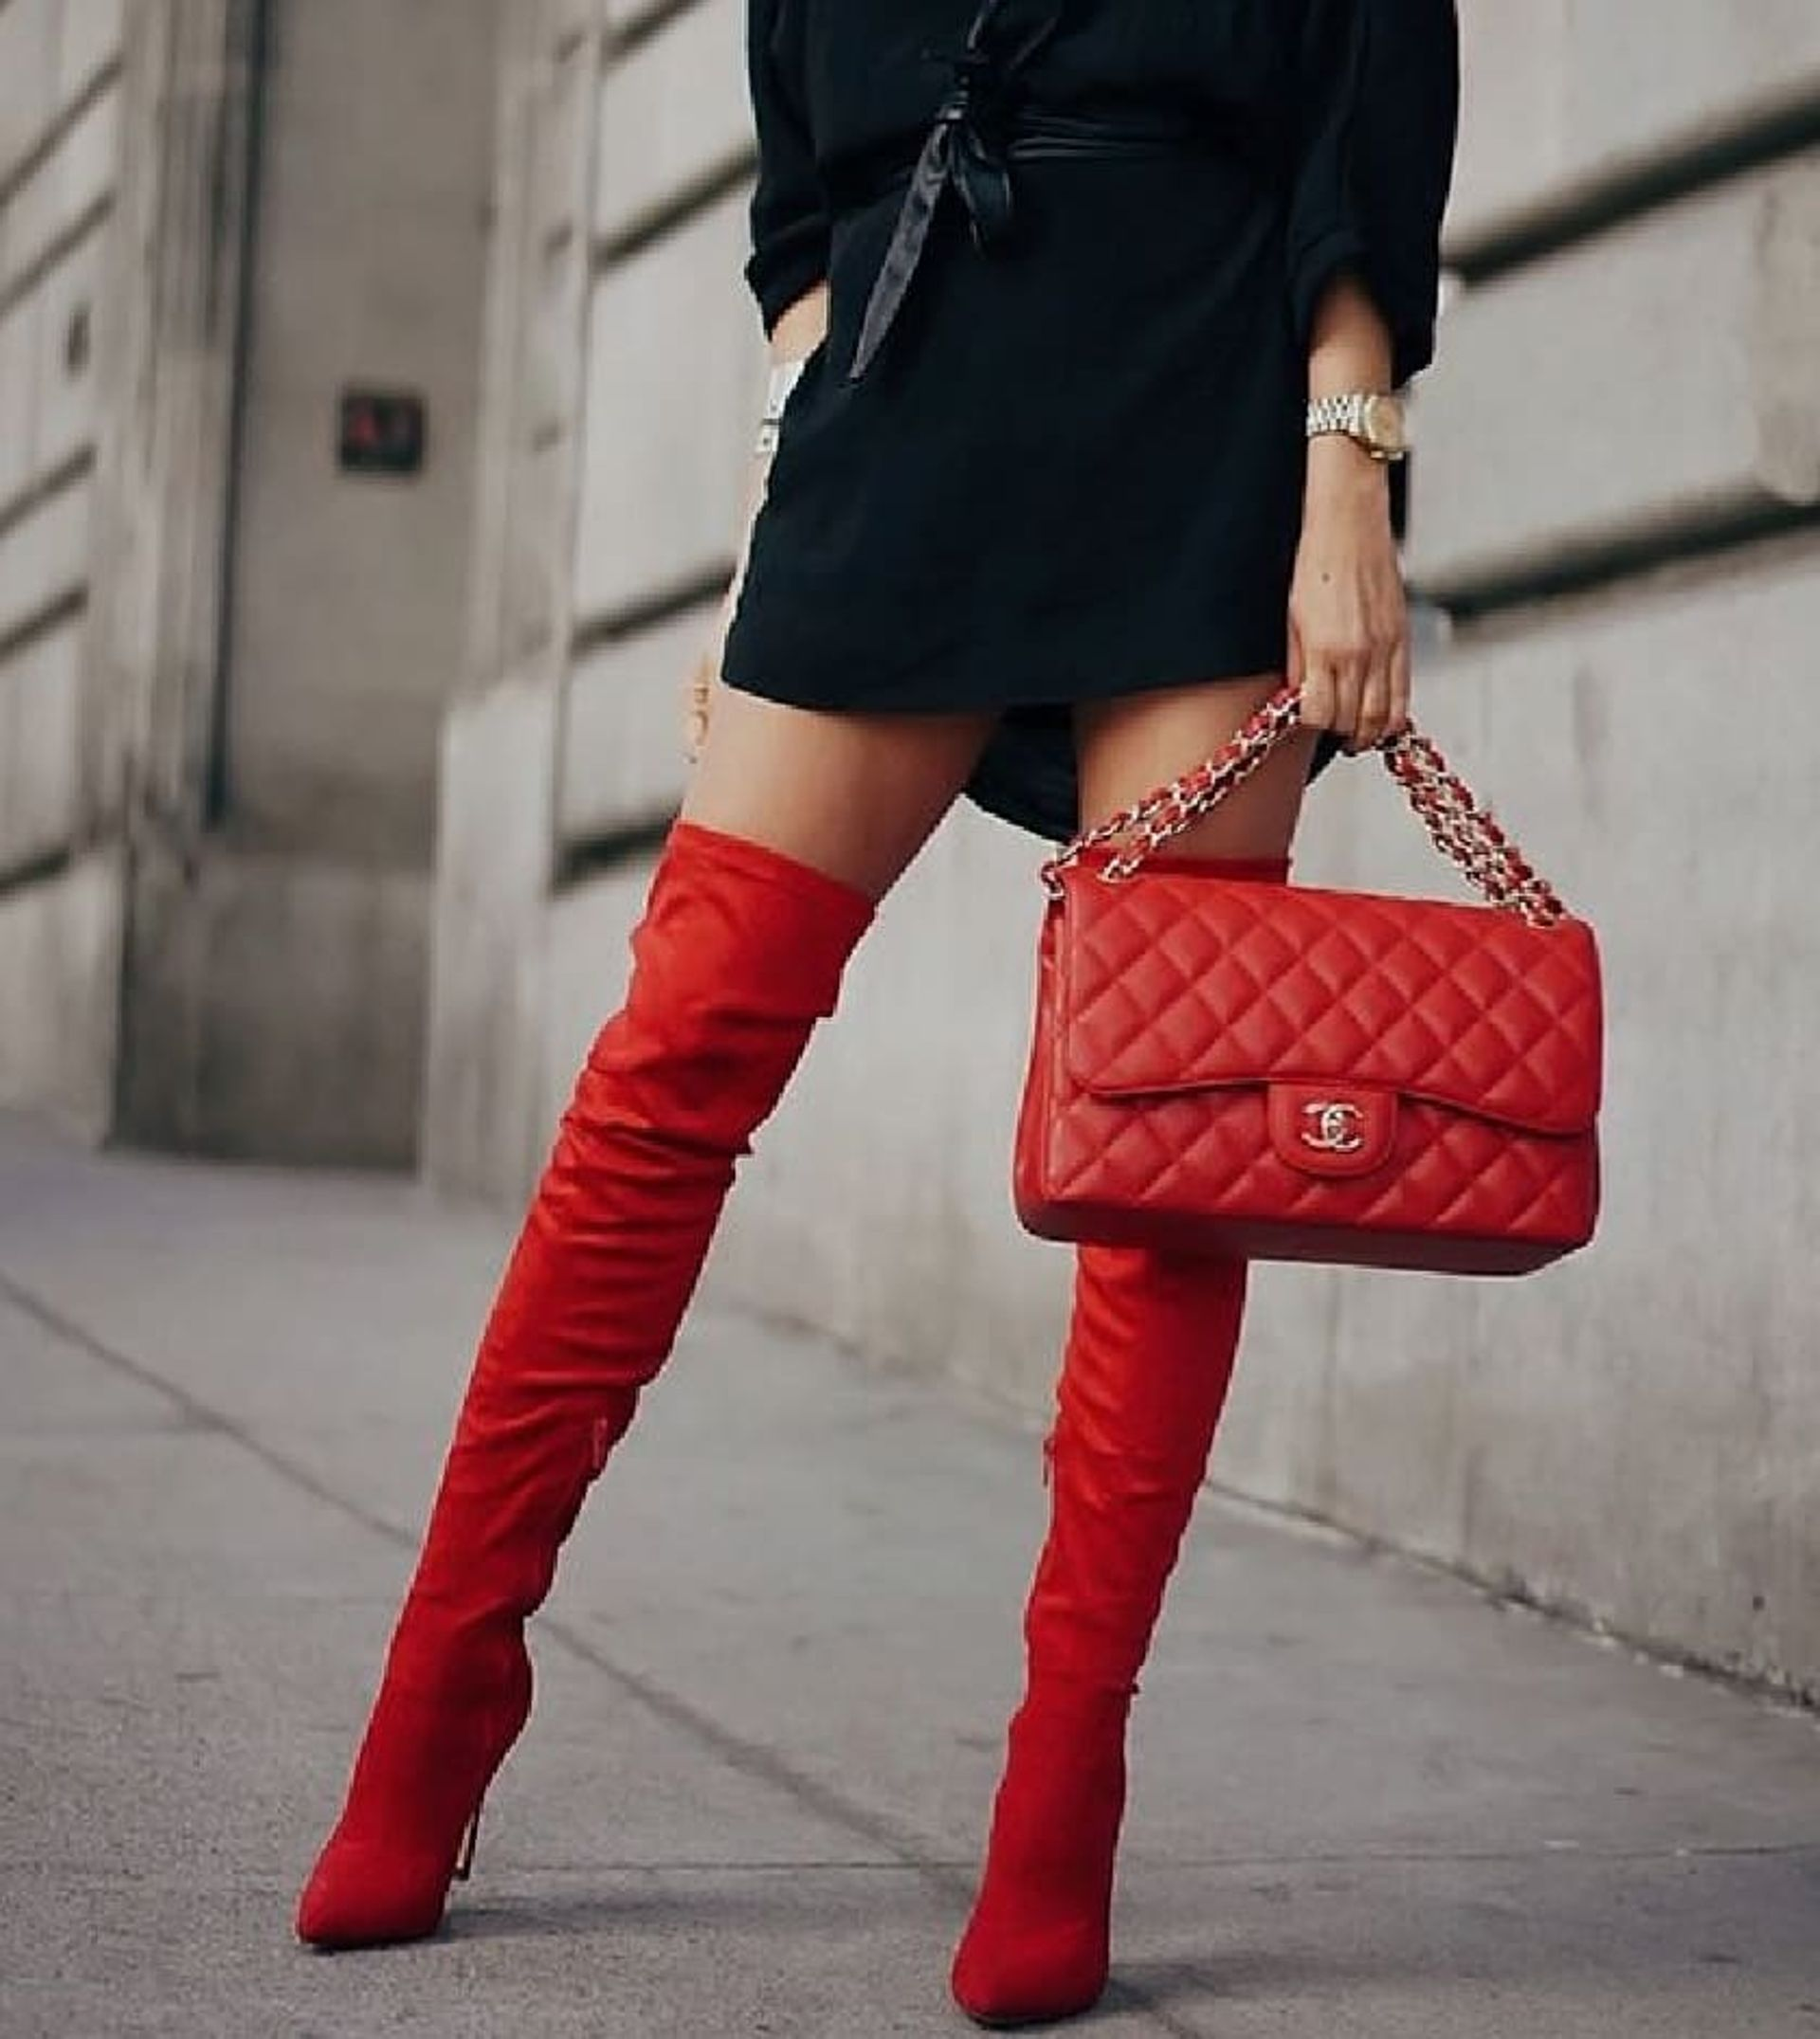 RED THIGH HIGH BOOTS - Macys Style Crew